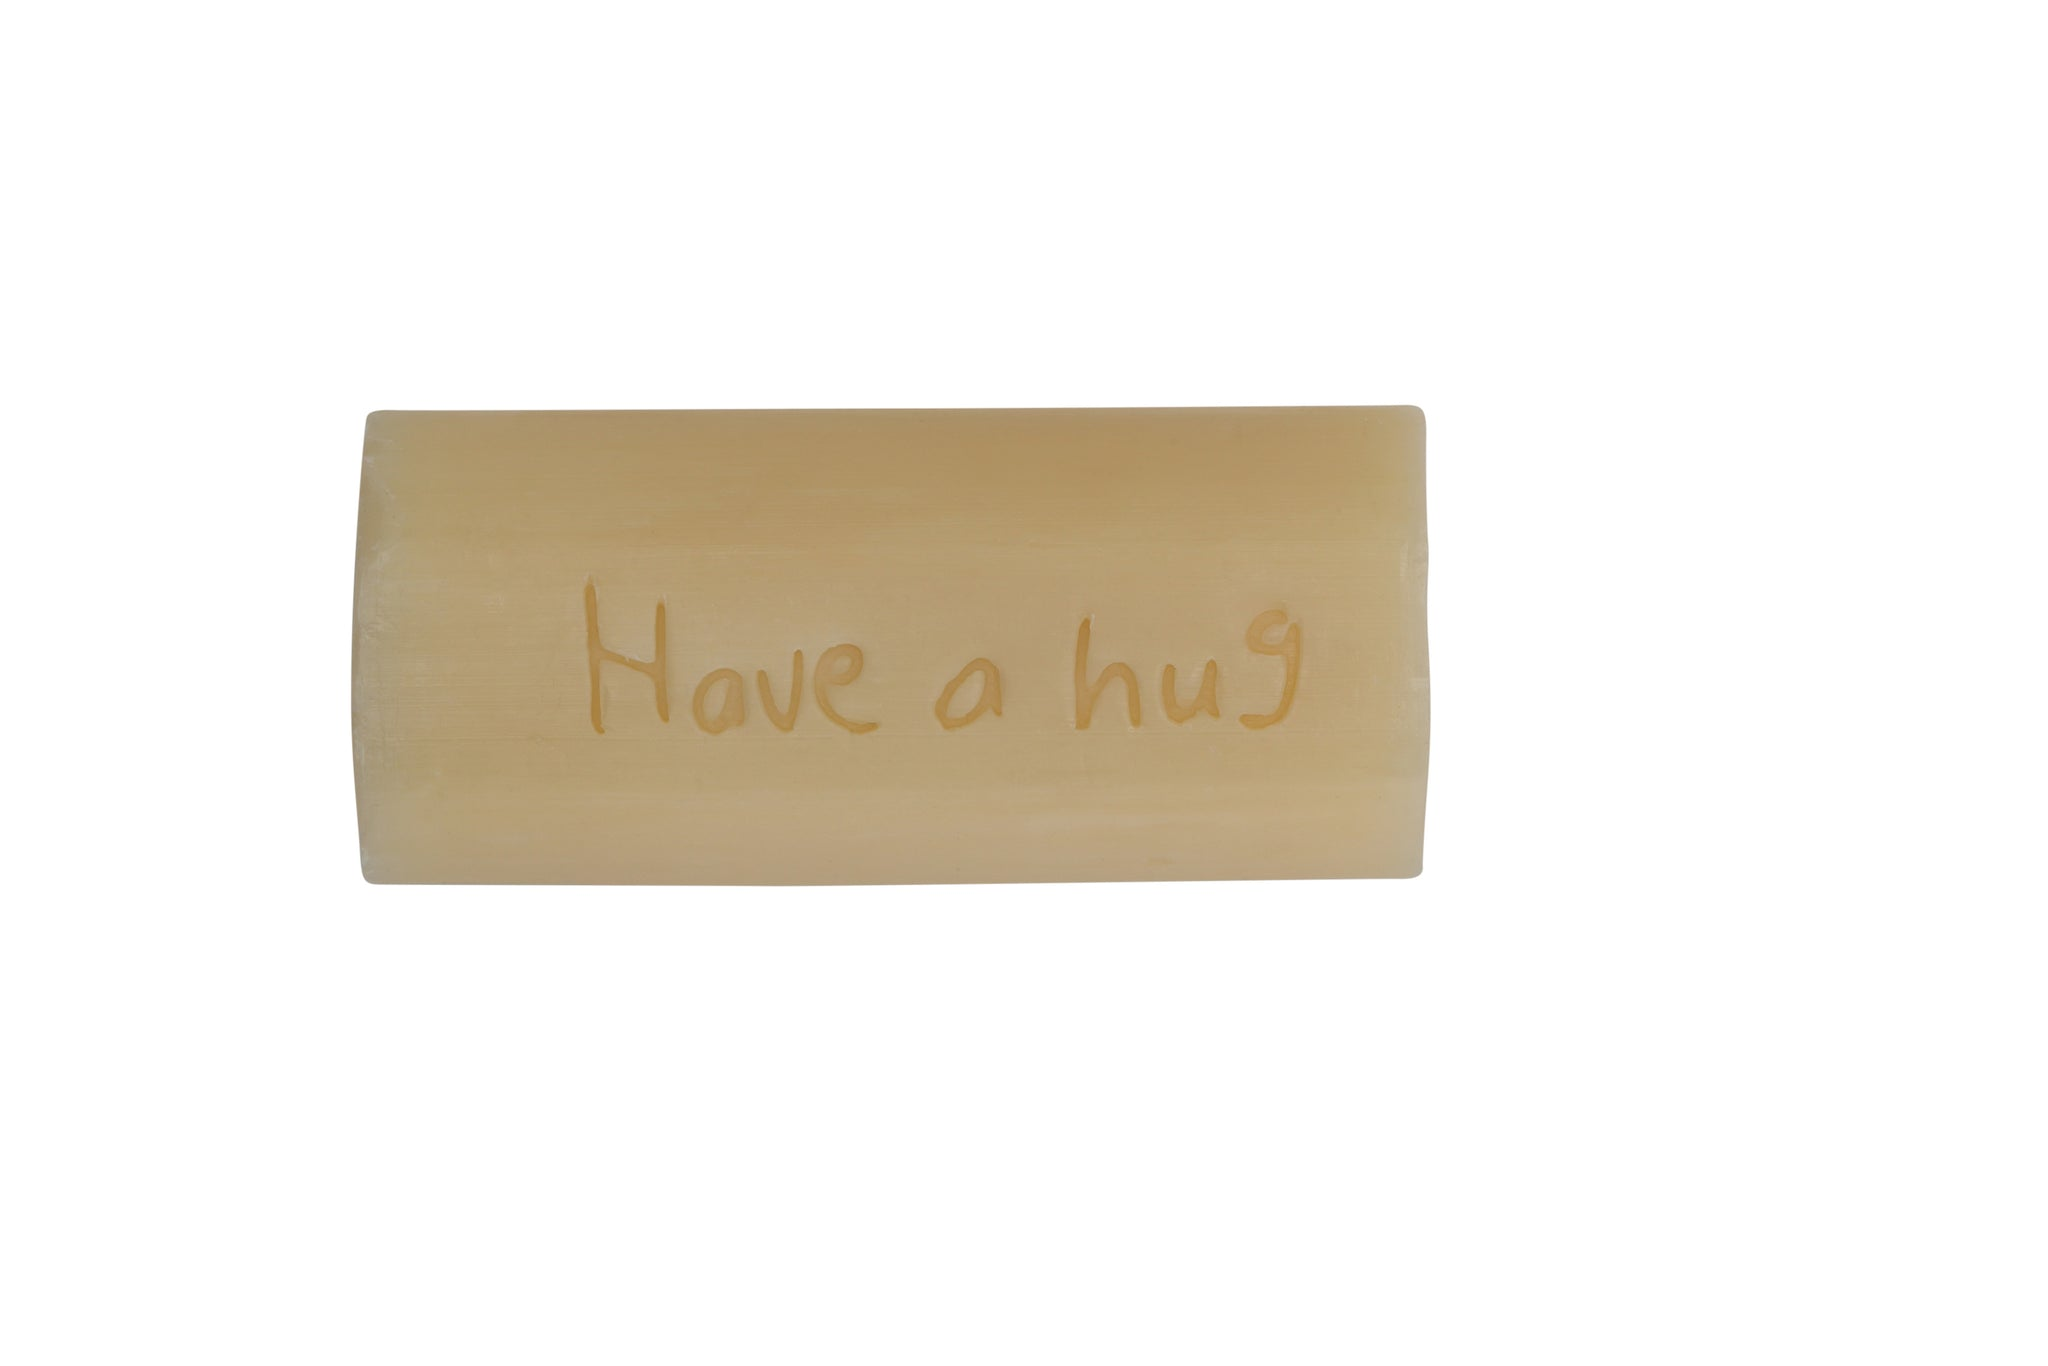 'Have a Hug' - Black Pomegranate Soap